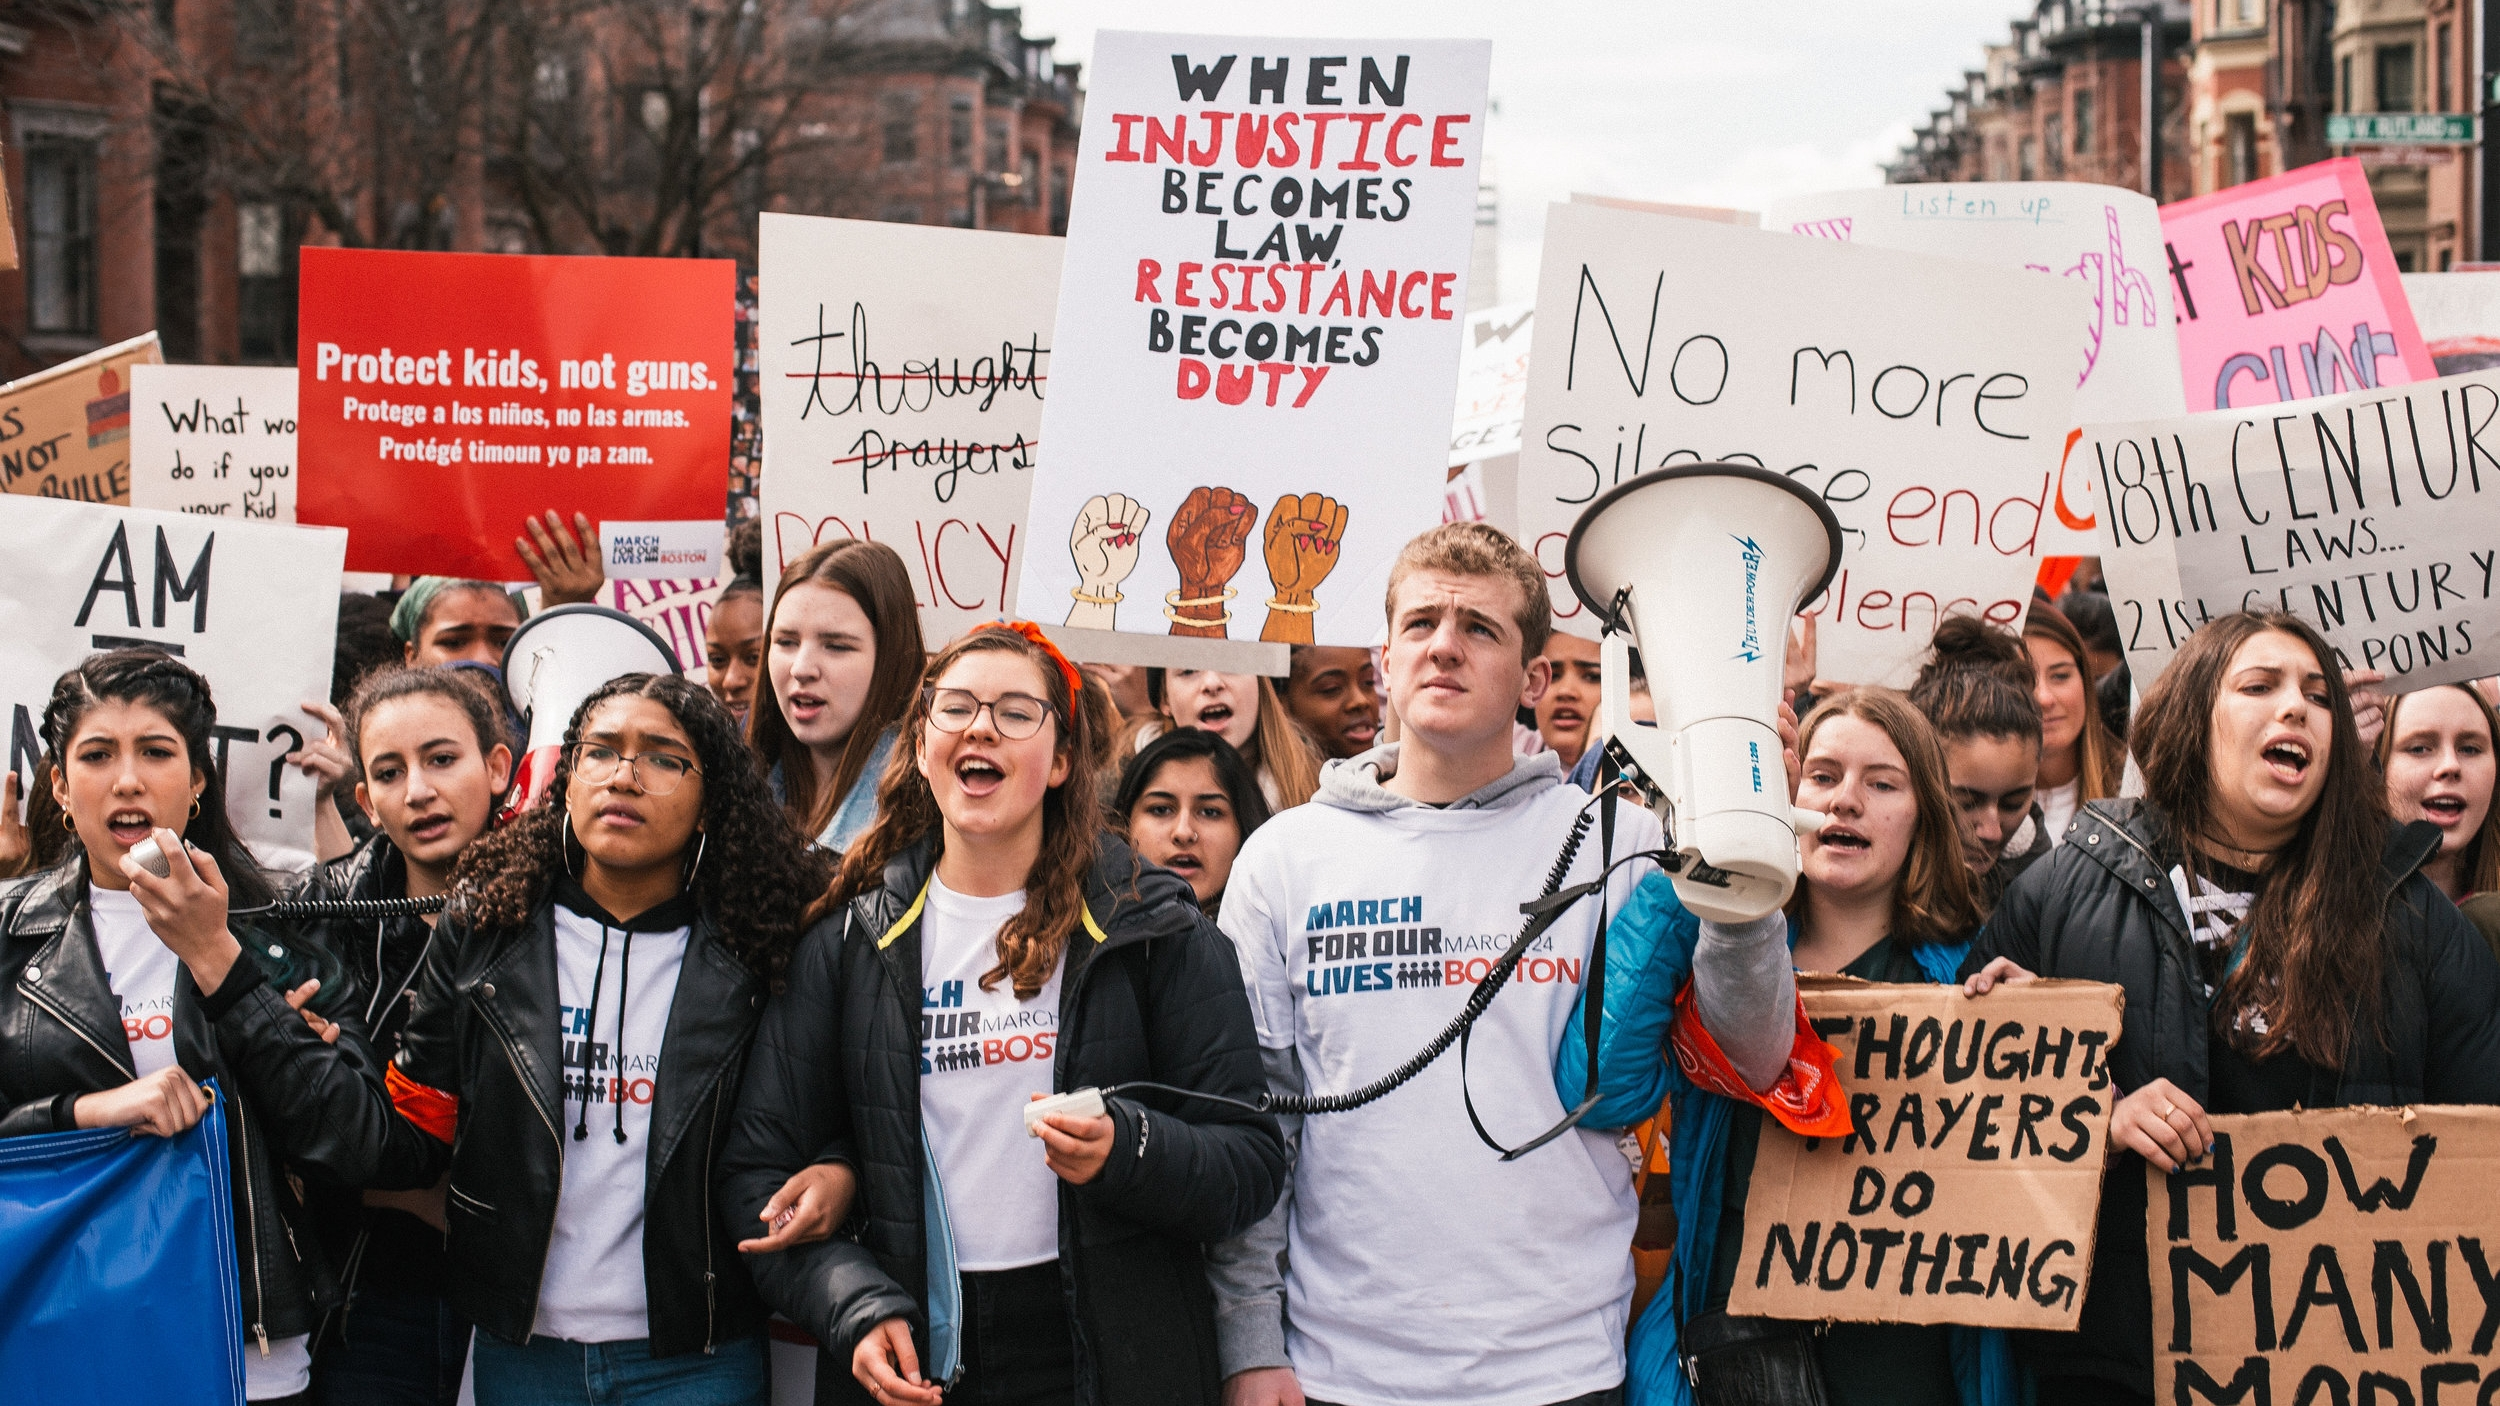 March For Our Lives Boston 3.24.18-6.jpg